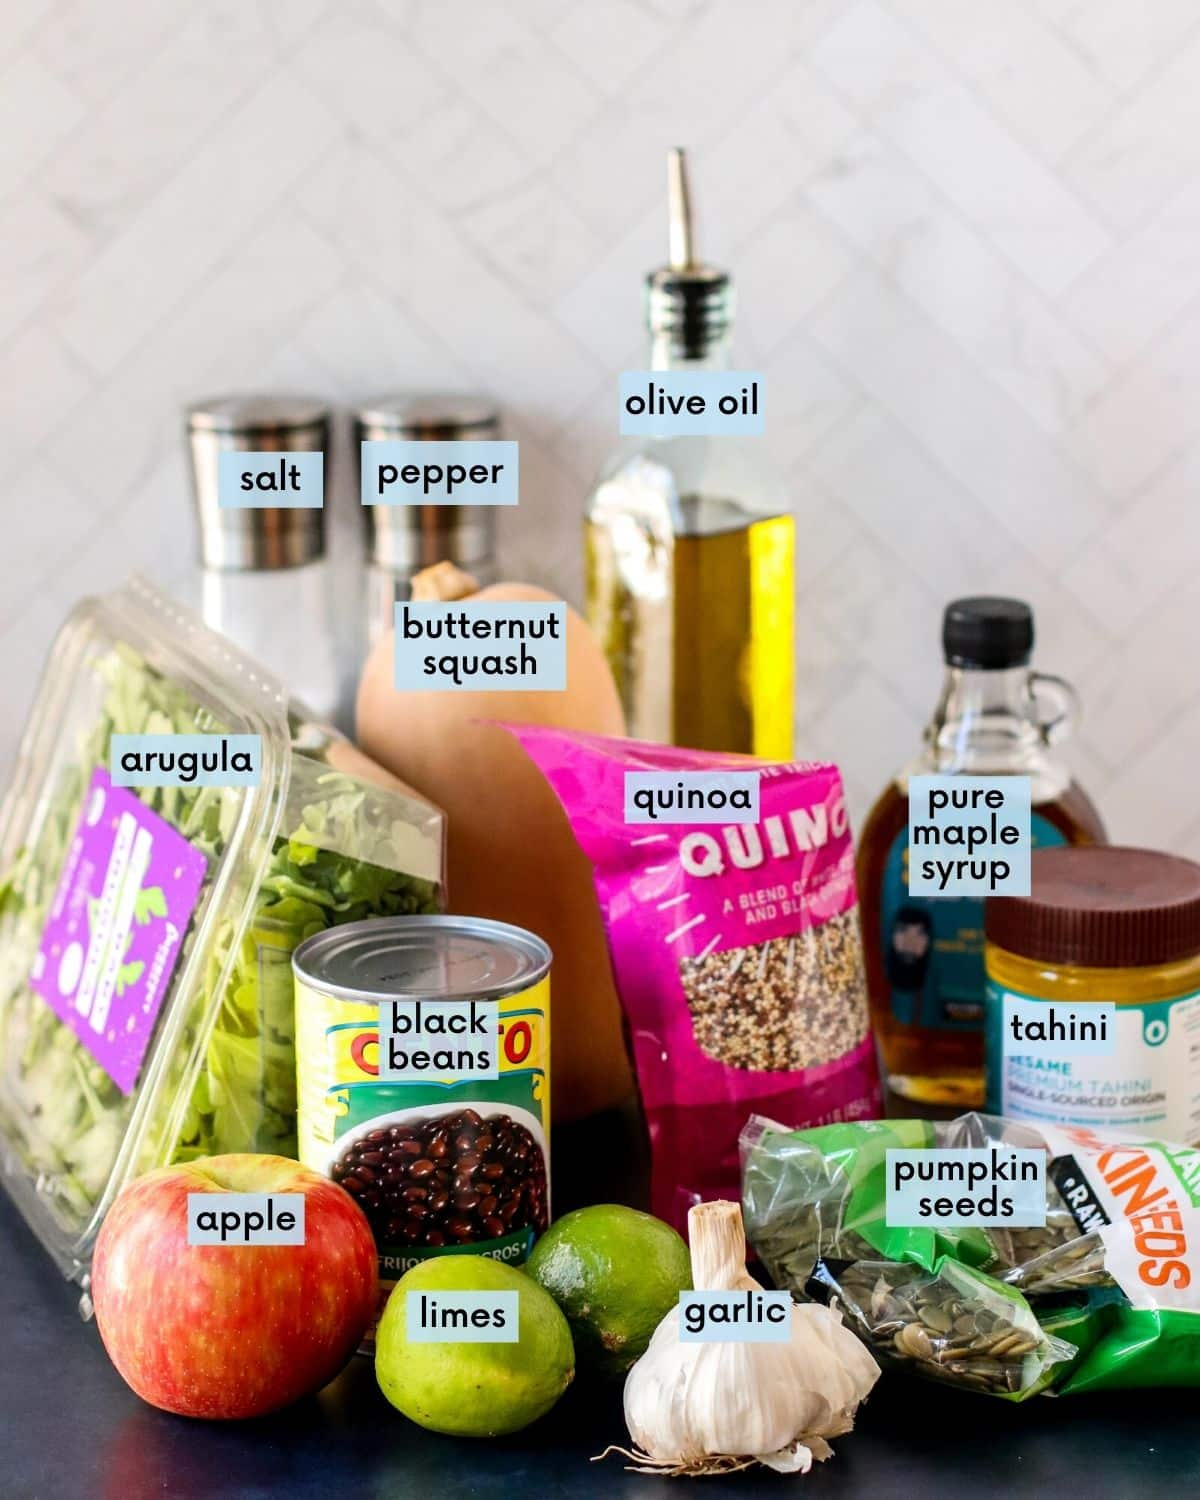 Labeled ingredients needed to make this recipe.